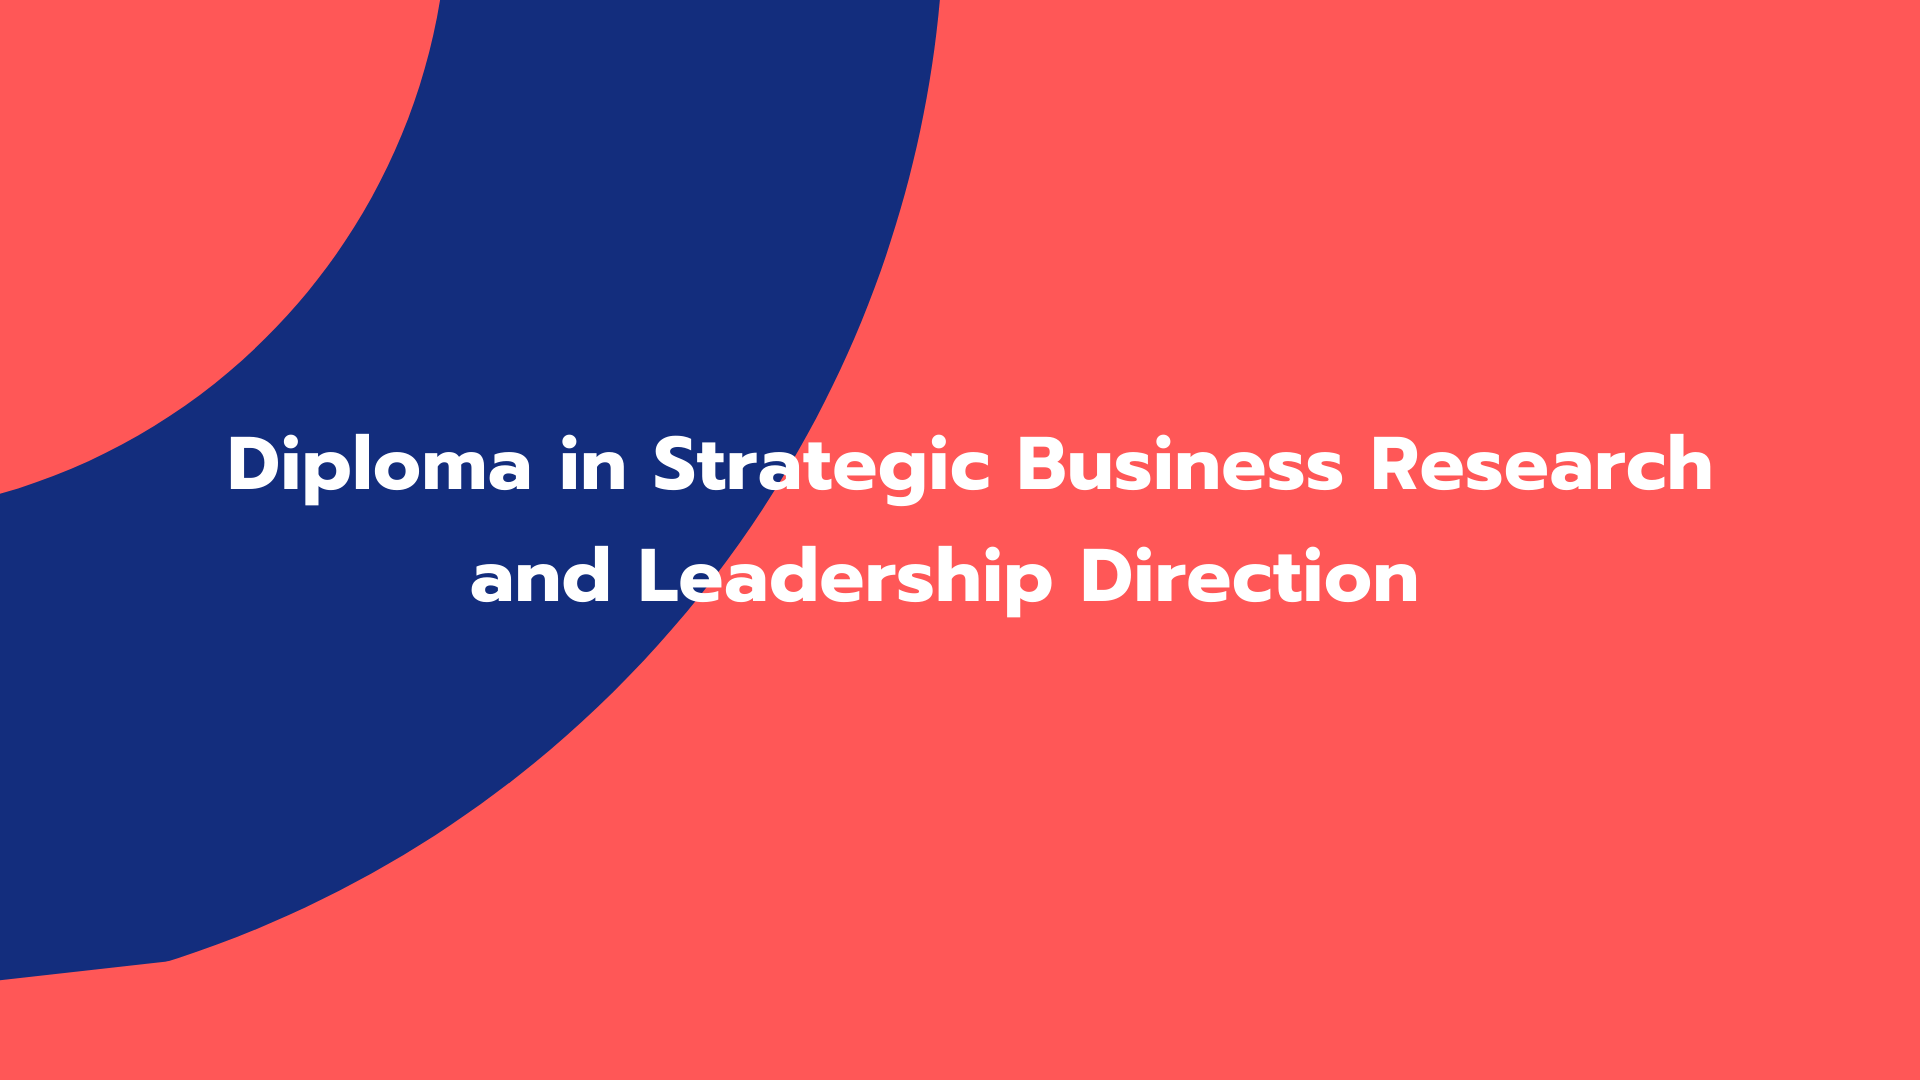 Diploma in Strategic Business Research and Leadership Direction